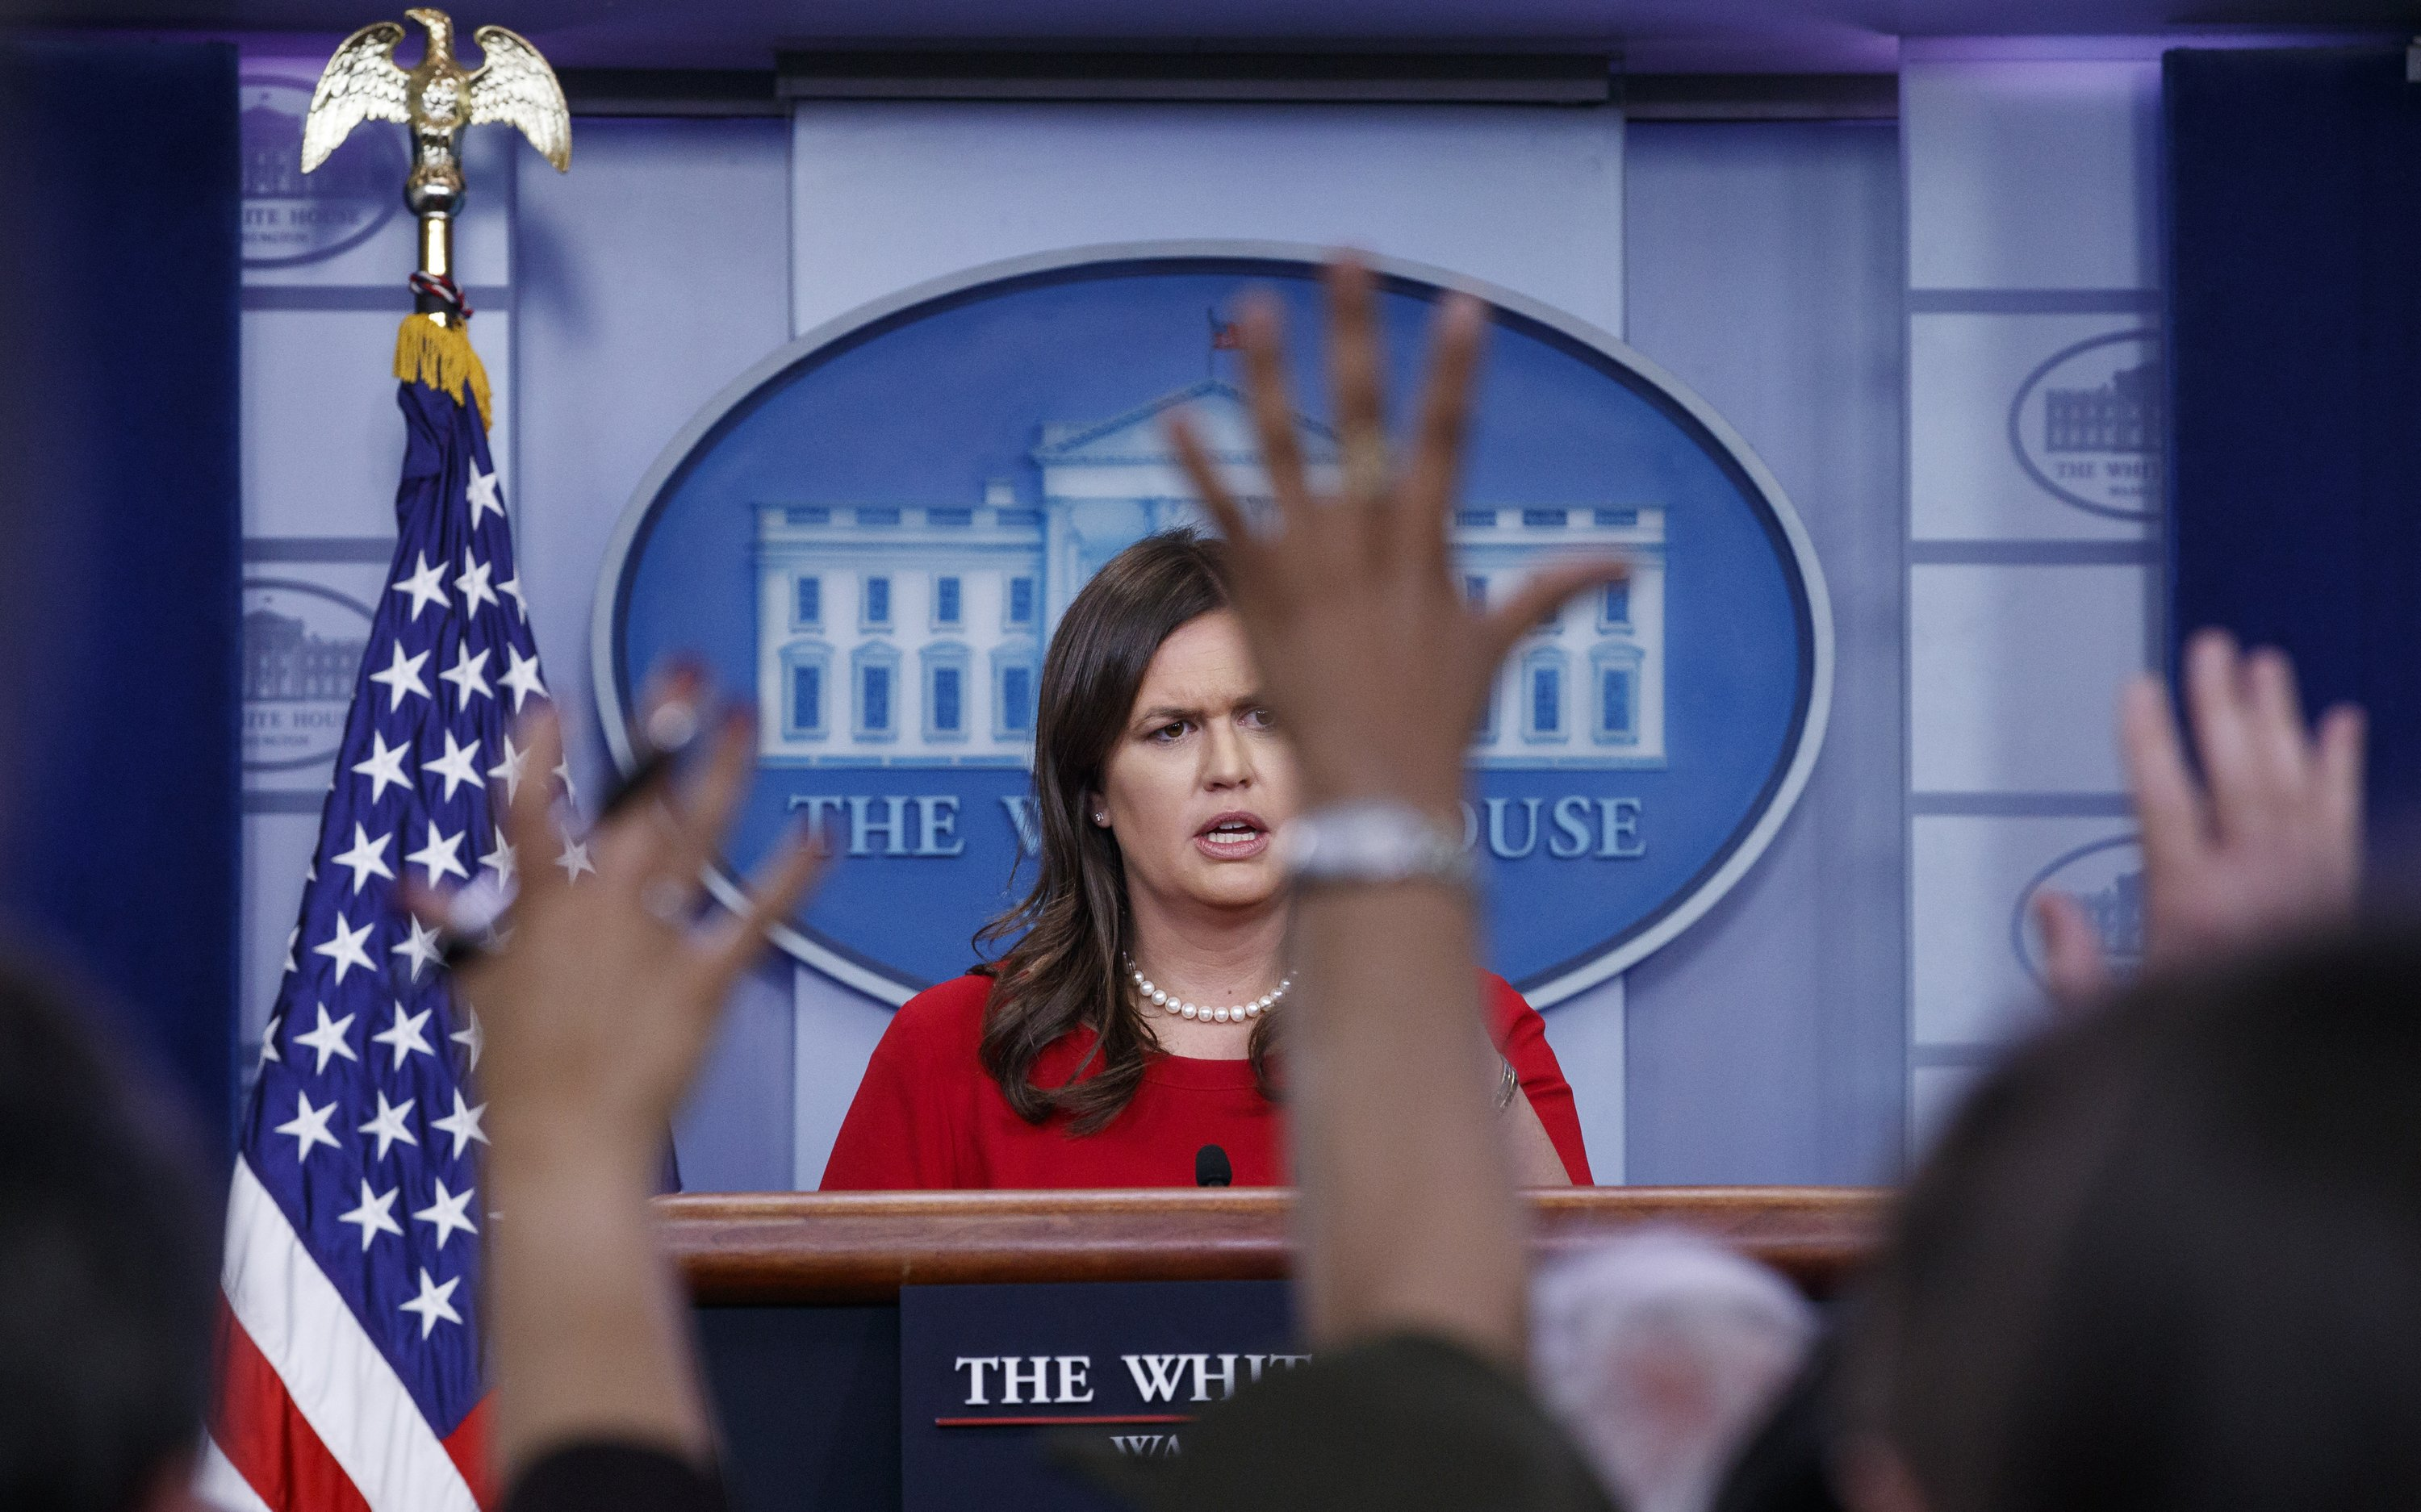 'Were you lying?' Sanders faces new credibility questions